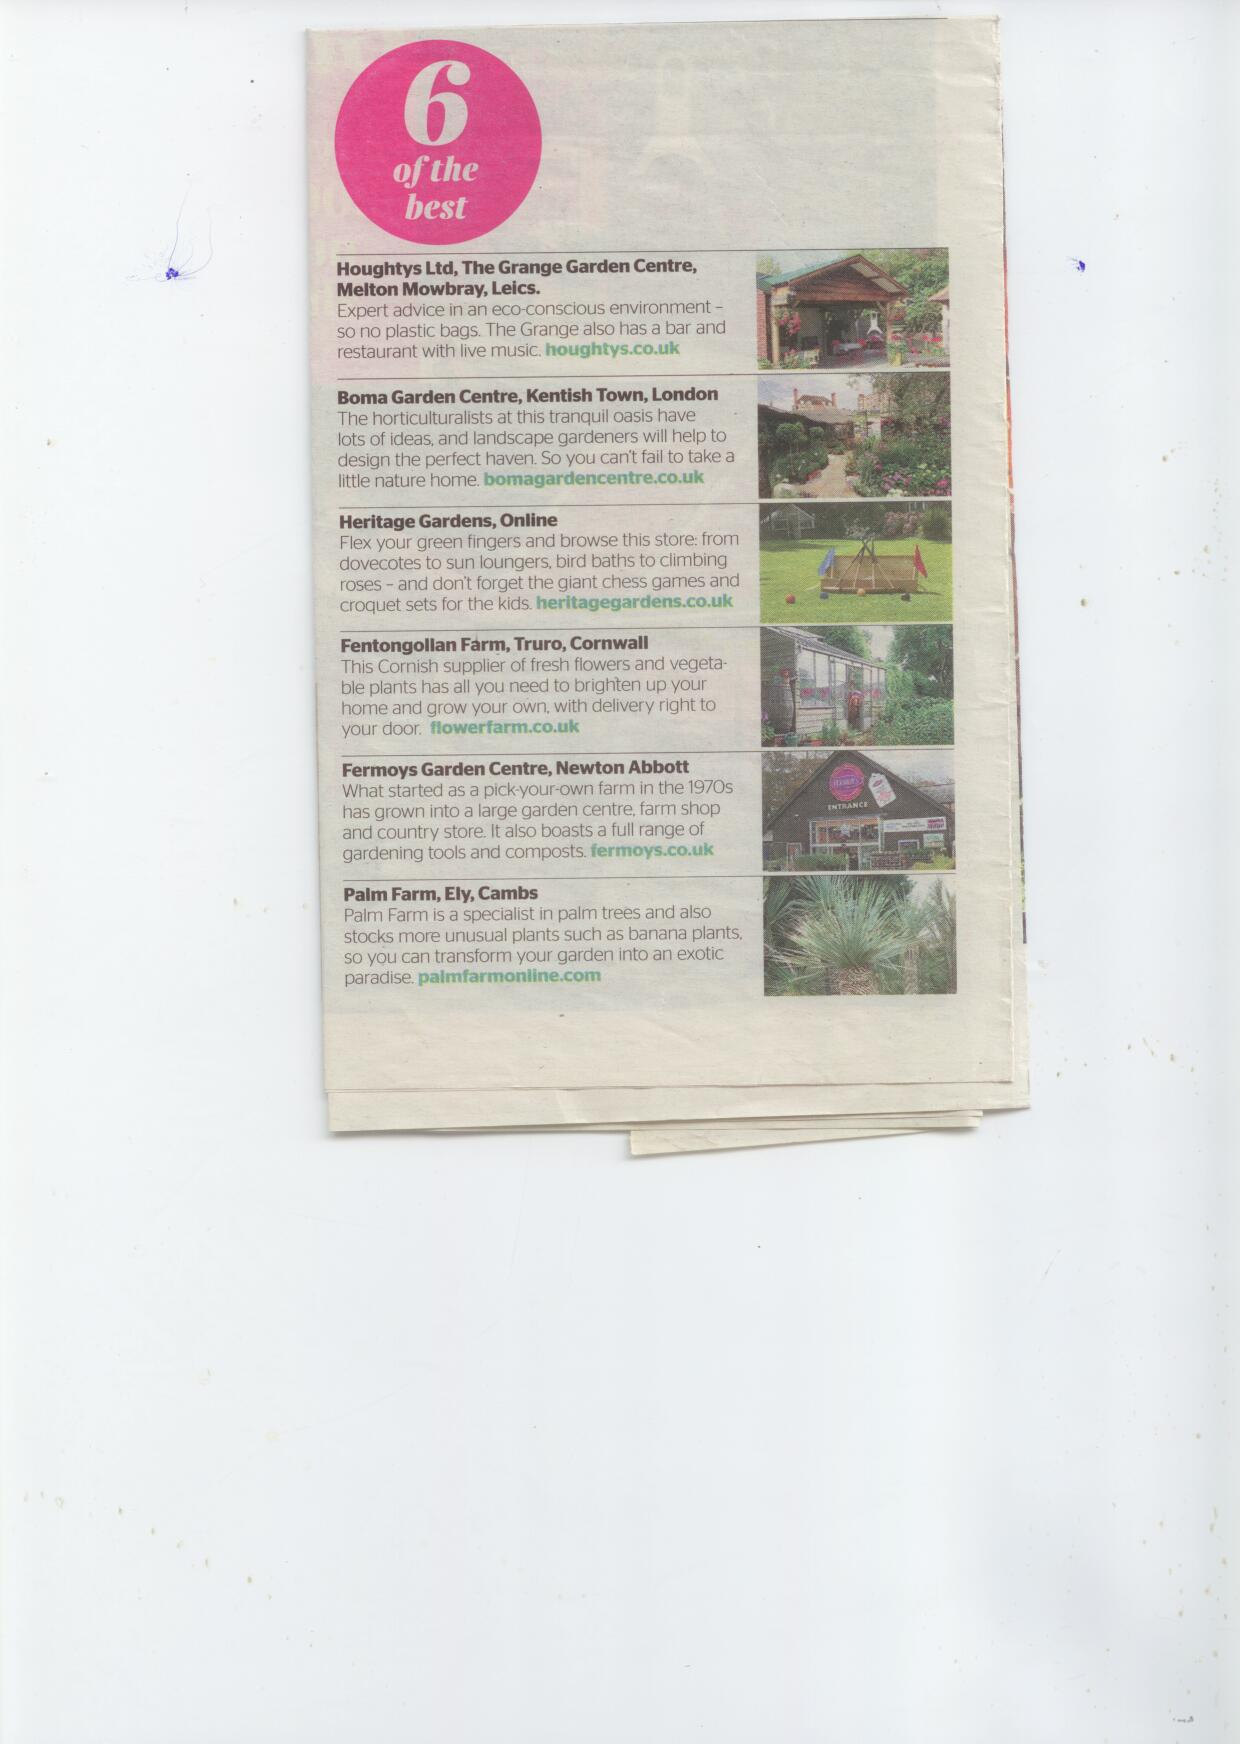 Picked in top 6 Garden Centres by the Times